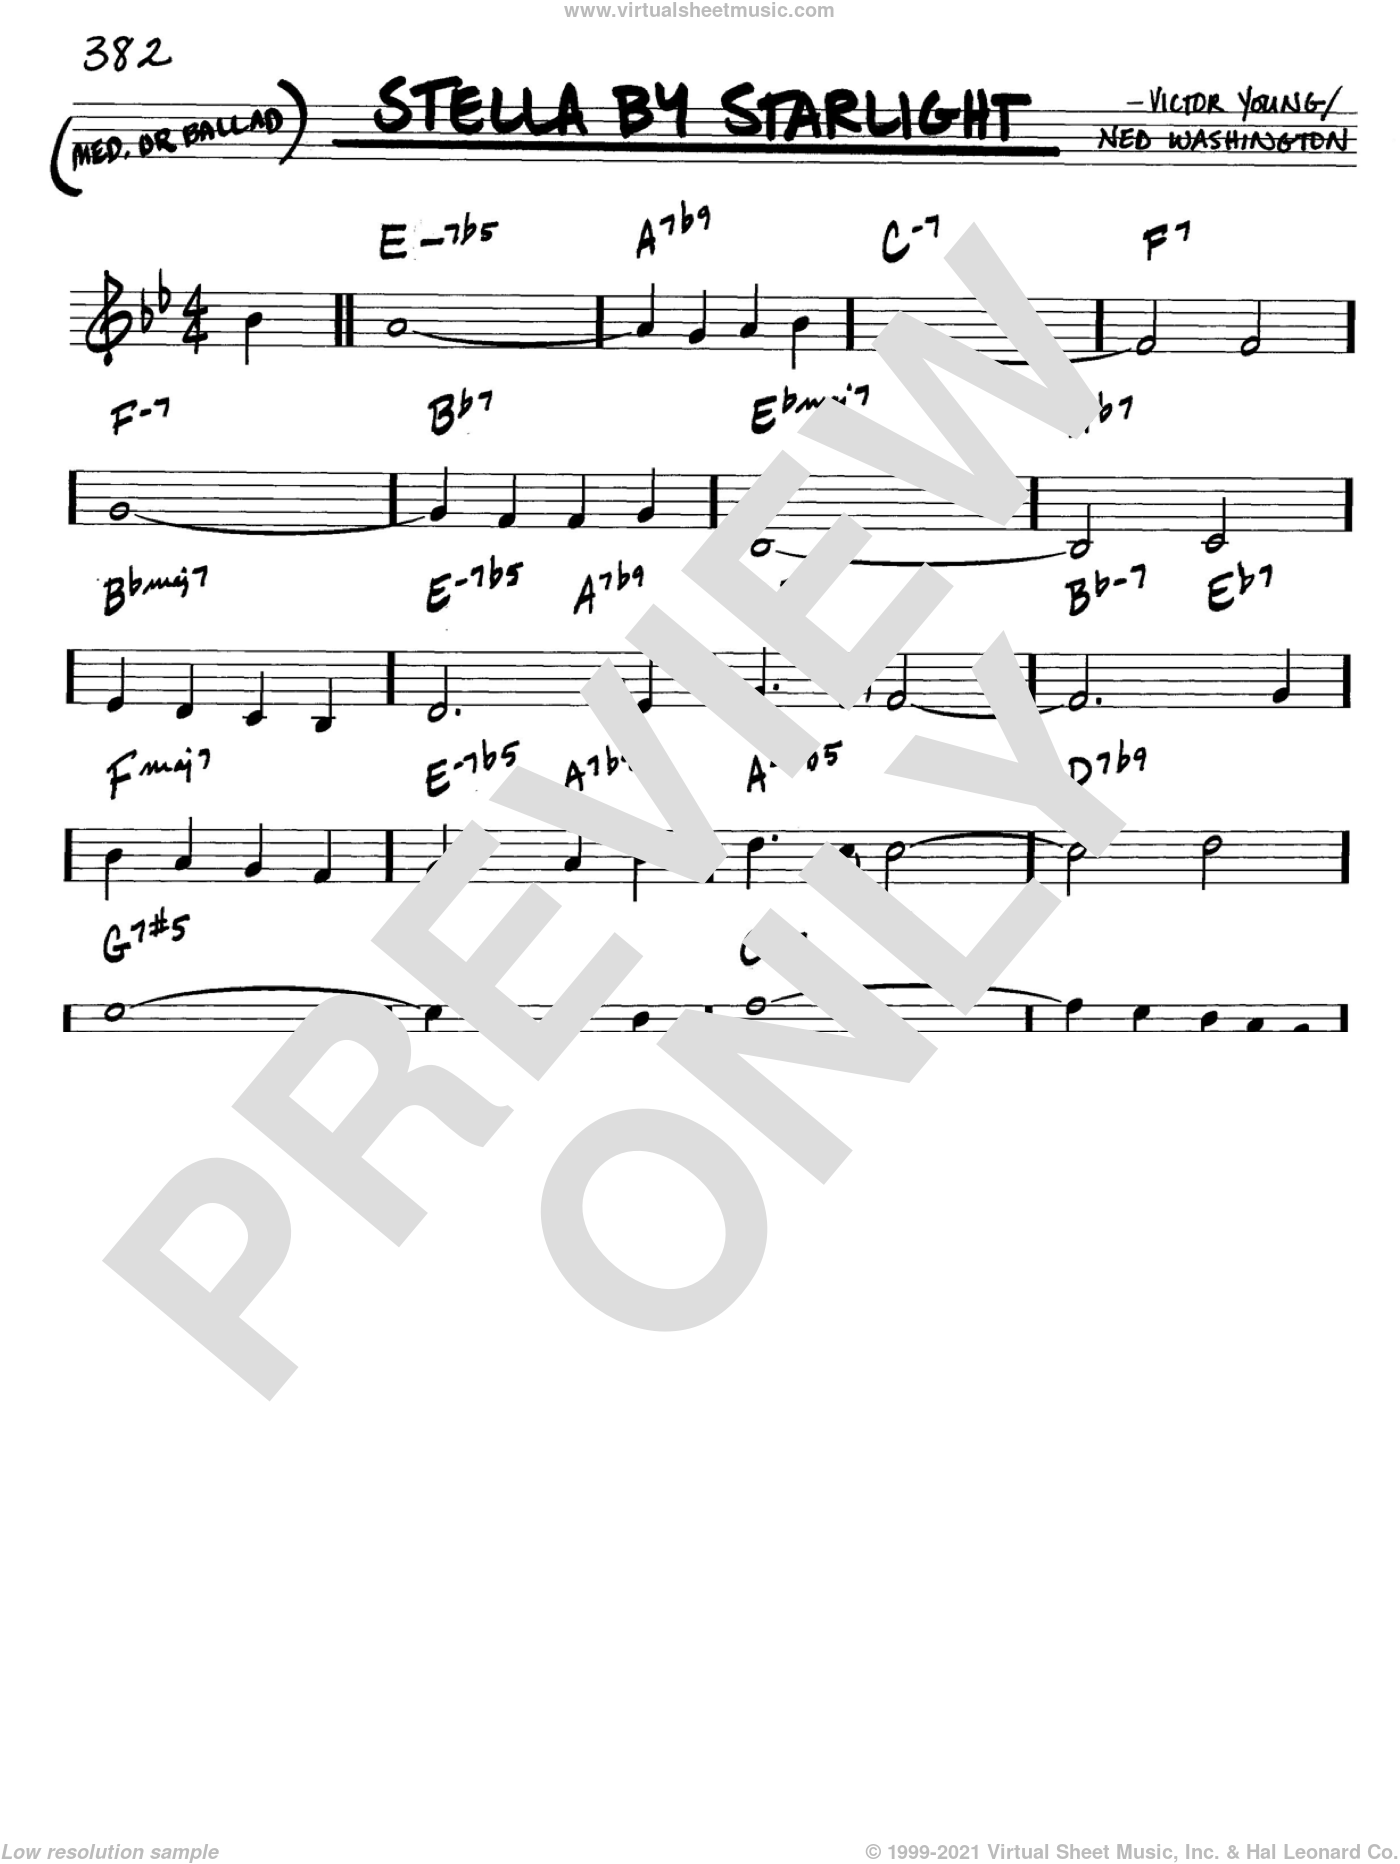 Stella By Starlight sheet music for voice and other instruments (C) by Victor Young and Ned Washington, intermediate voice. Score Image Preview.